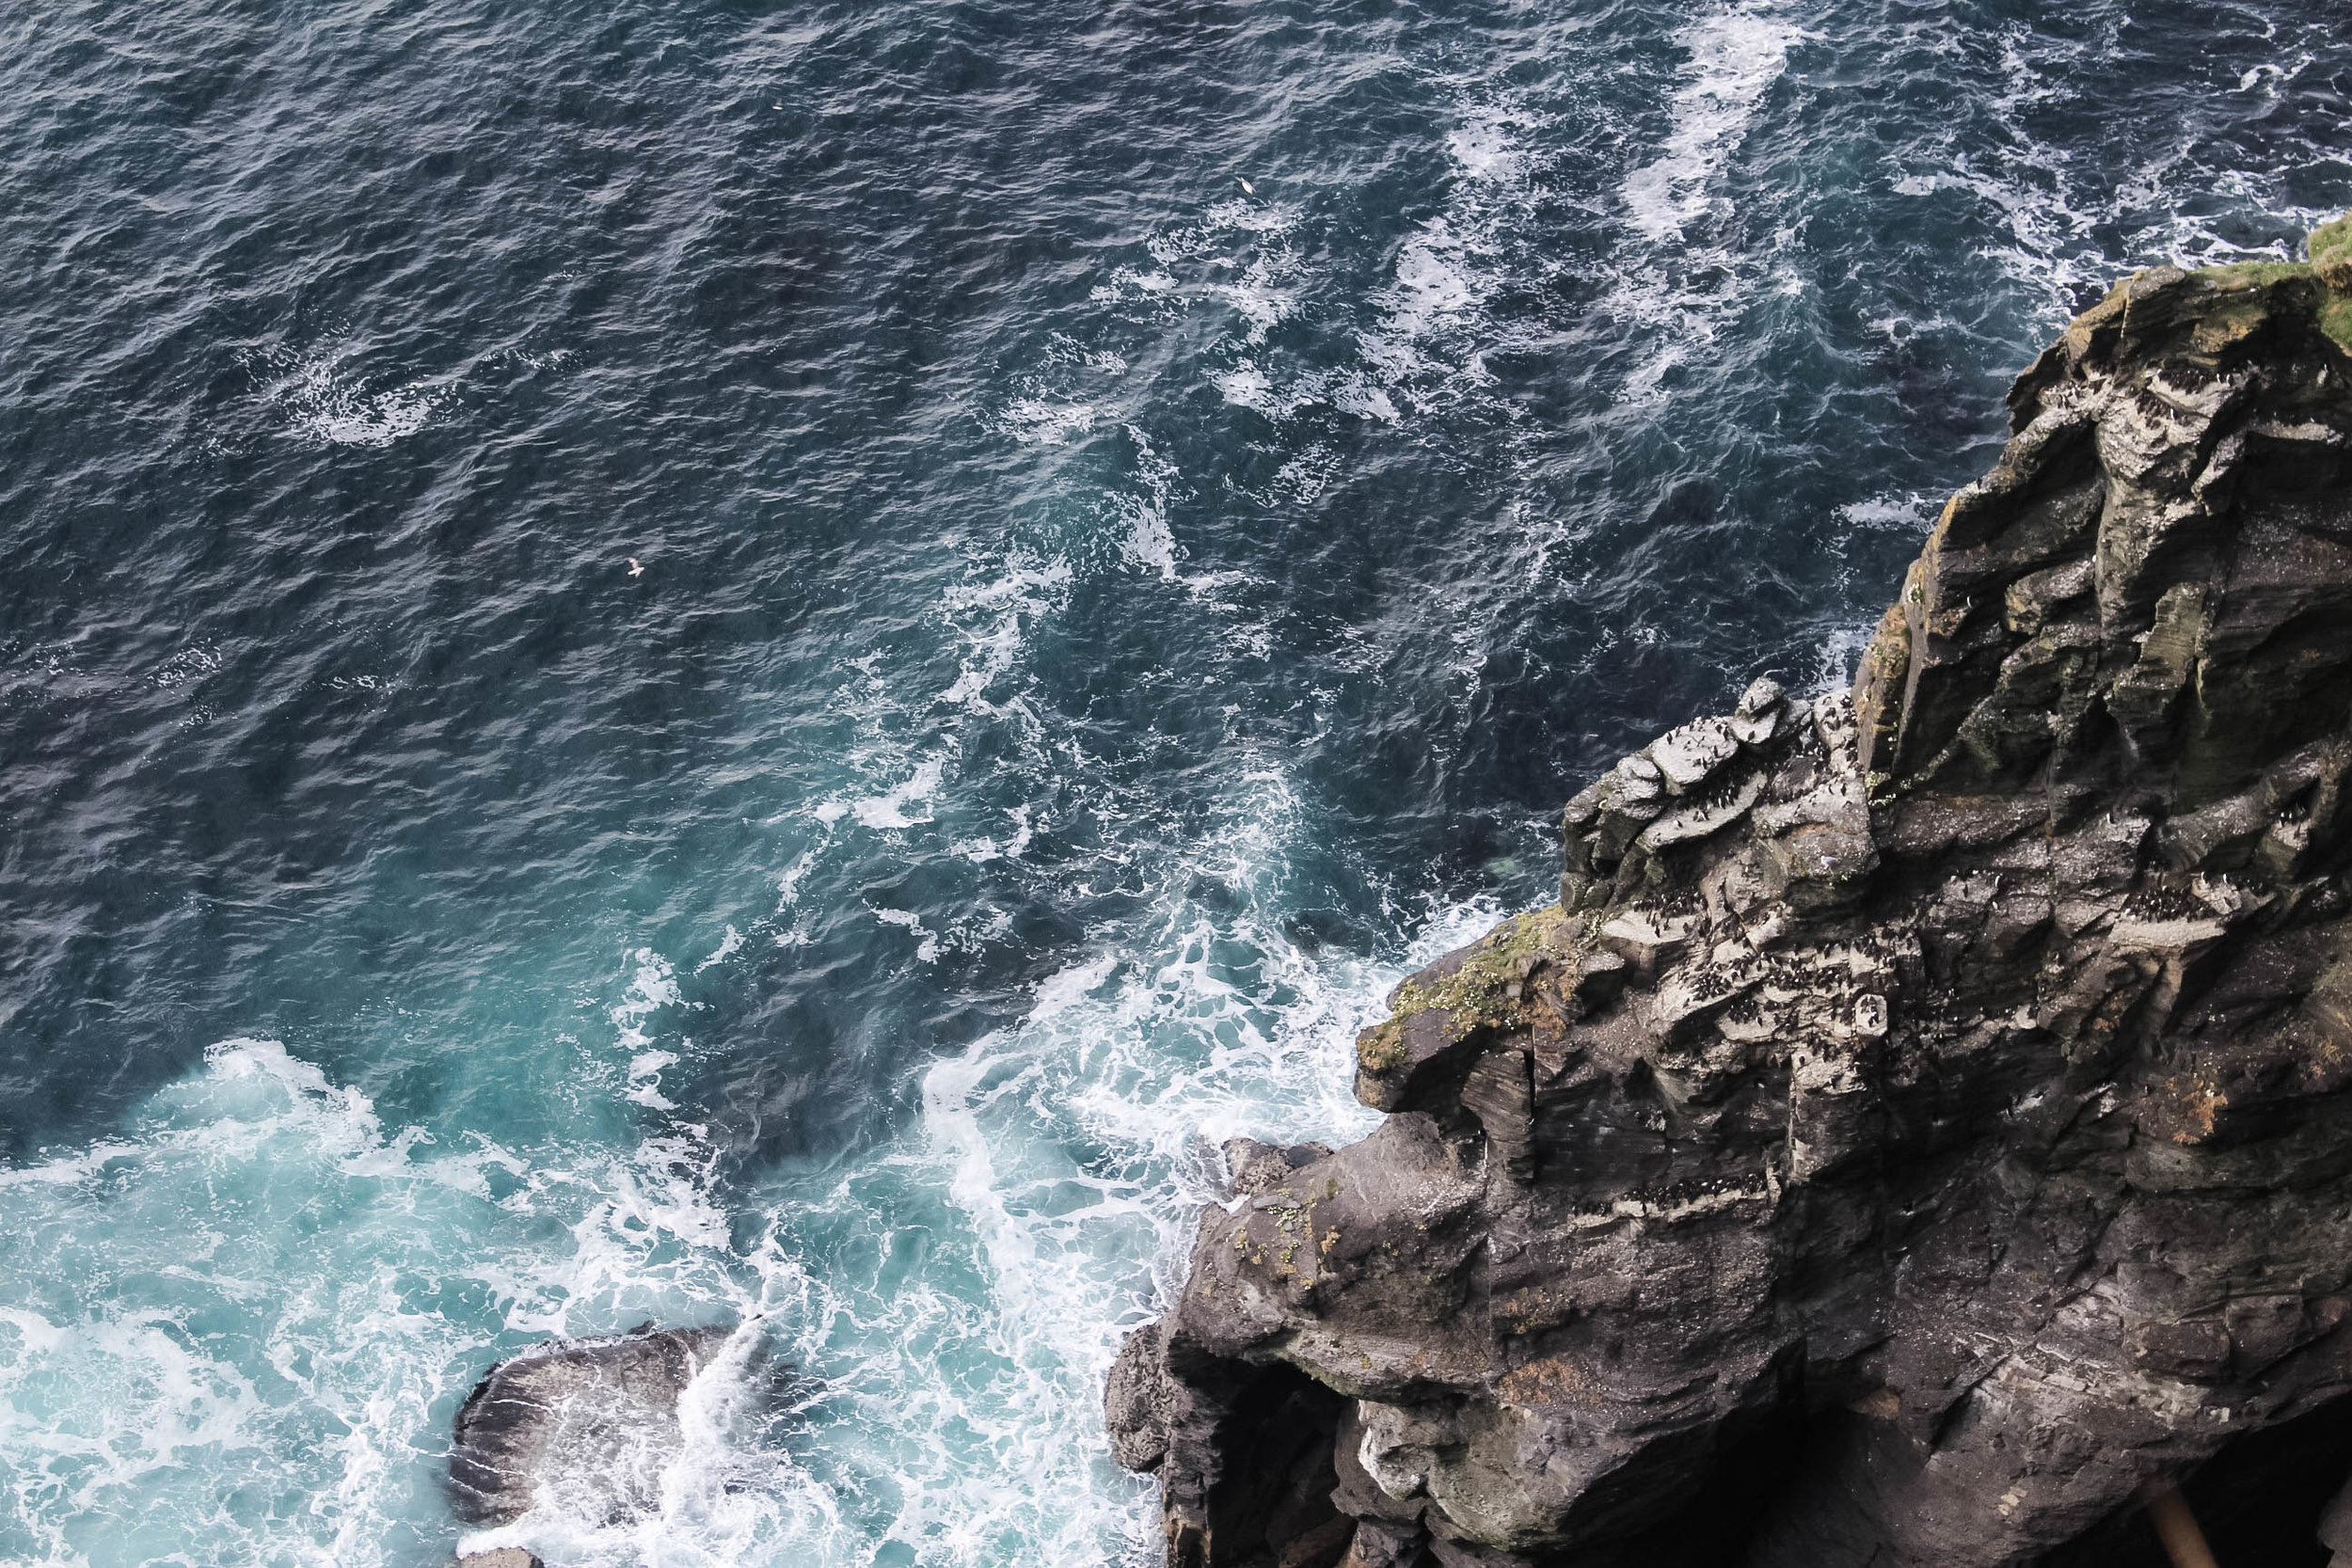 Puffins at the Cliffs of Moher, Ireland - Coastal Cliff Walk - Clare County, Ireland things to do